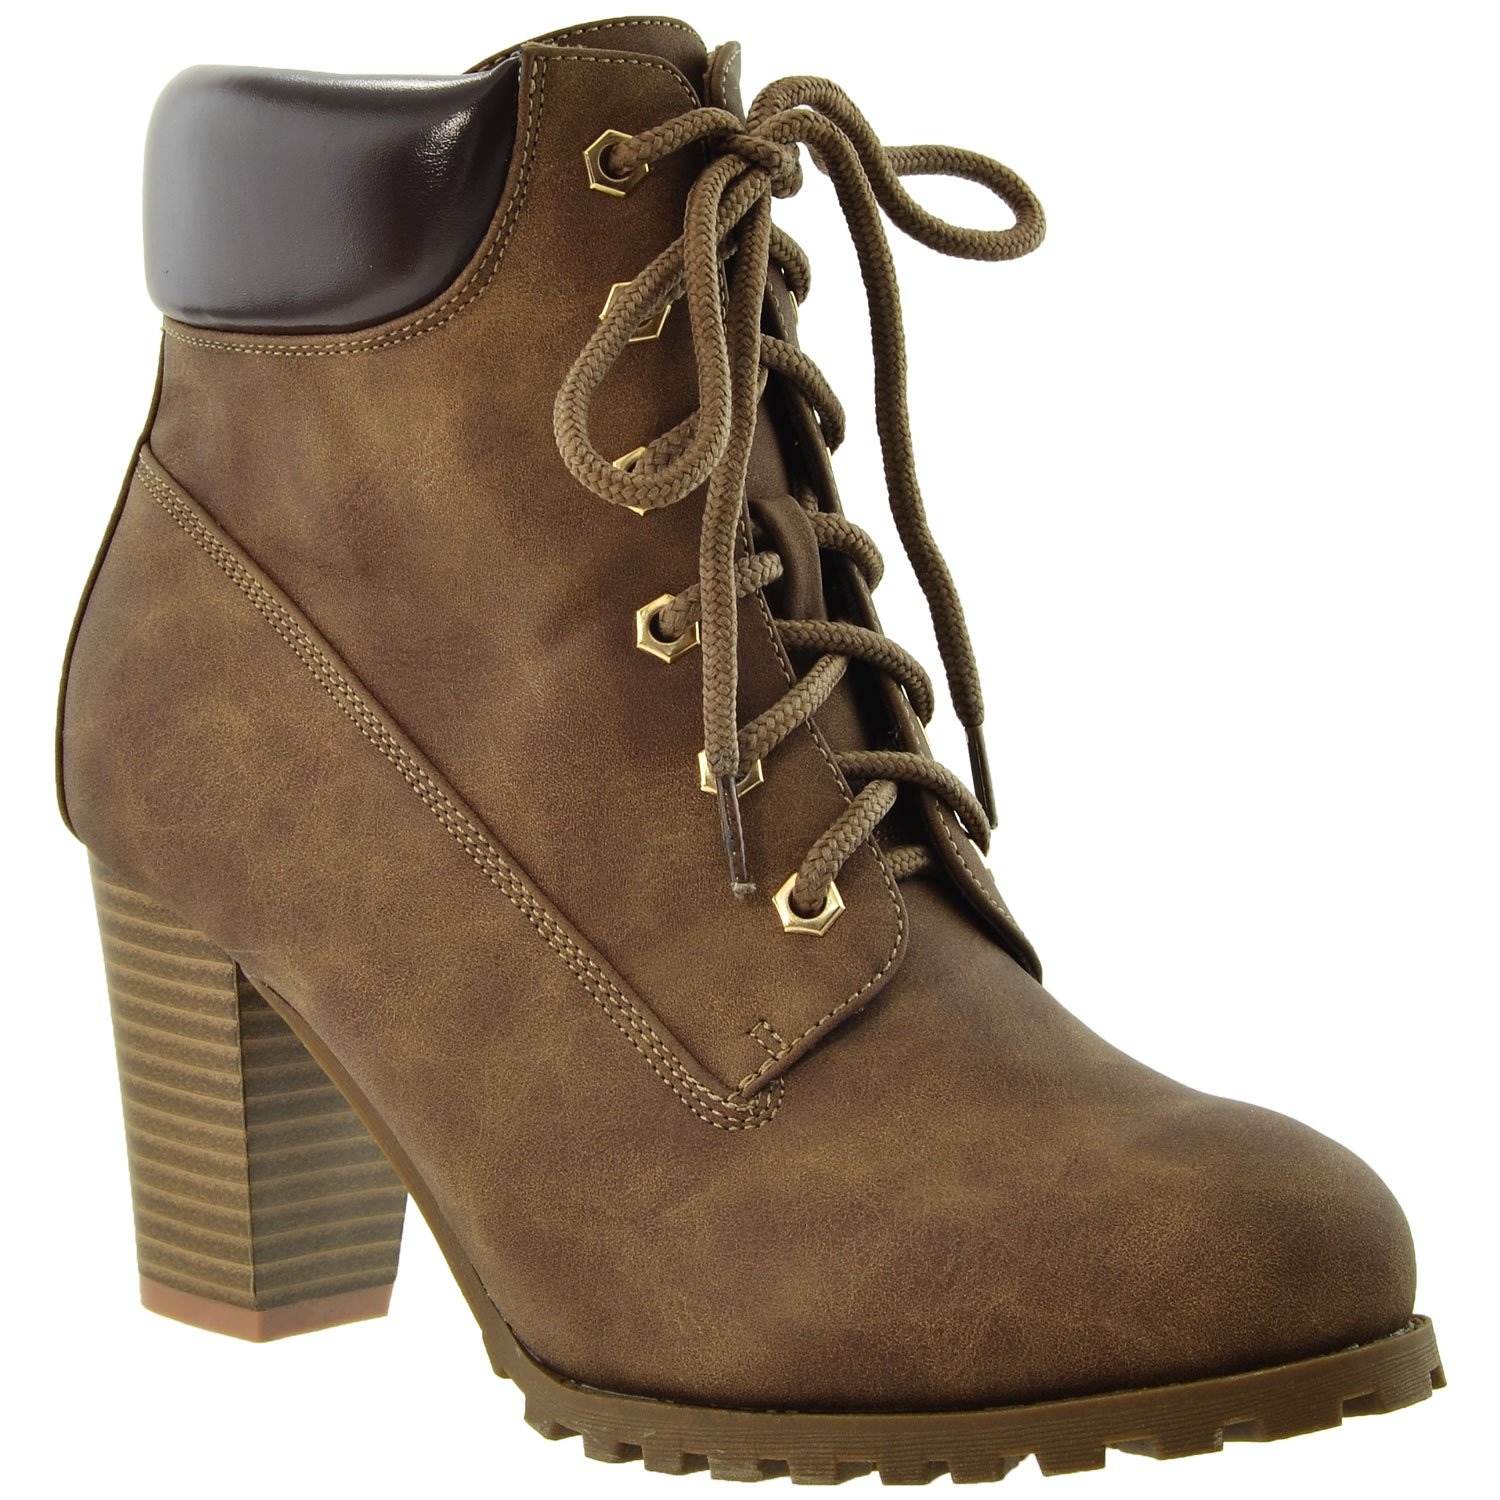 841401e7c3c Amazon.com | Womens Boots Lace Up Stacked Chunky Heel Ankle Padded Booties  KSC-WB-A10 | Ankle & Bootie